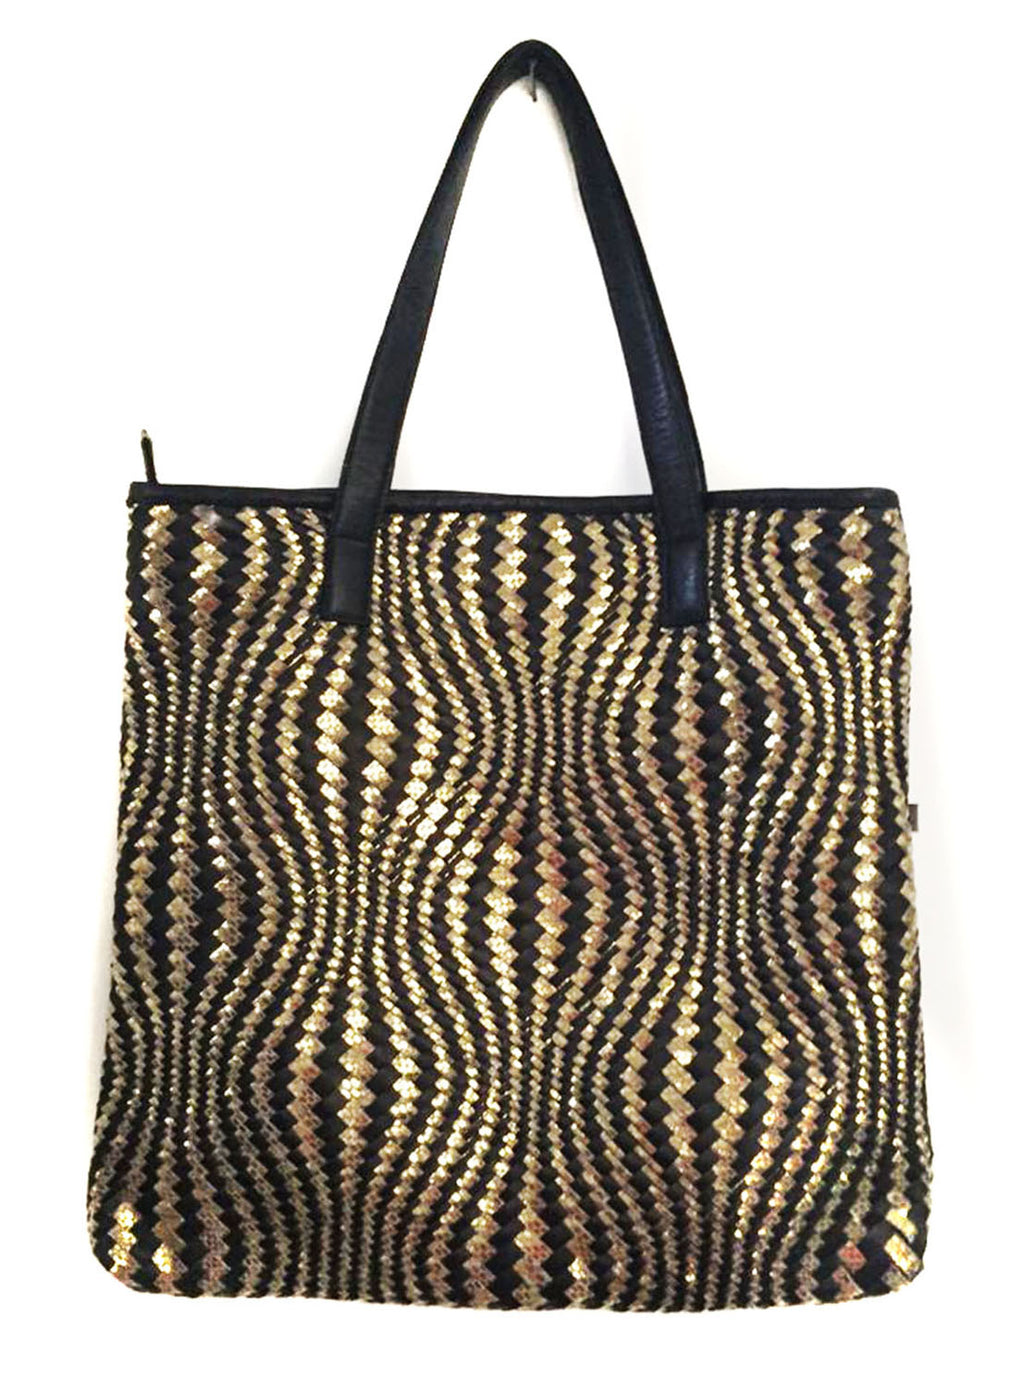 Cape Hotseller Woman Leather Woven Metallic Tote Bag